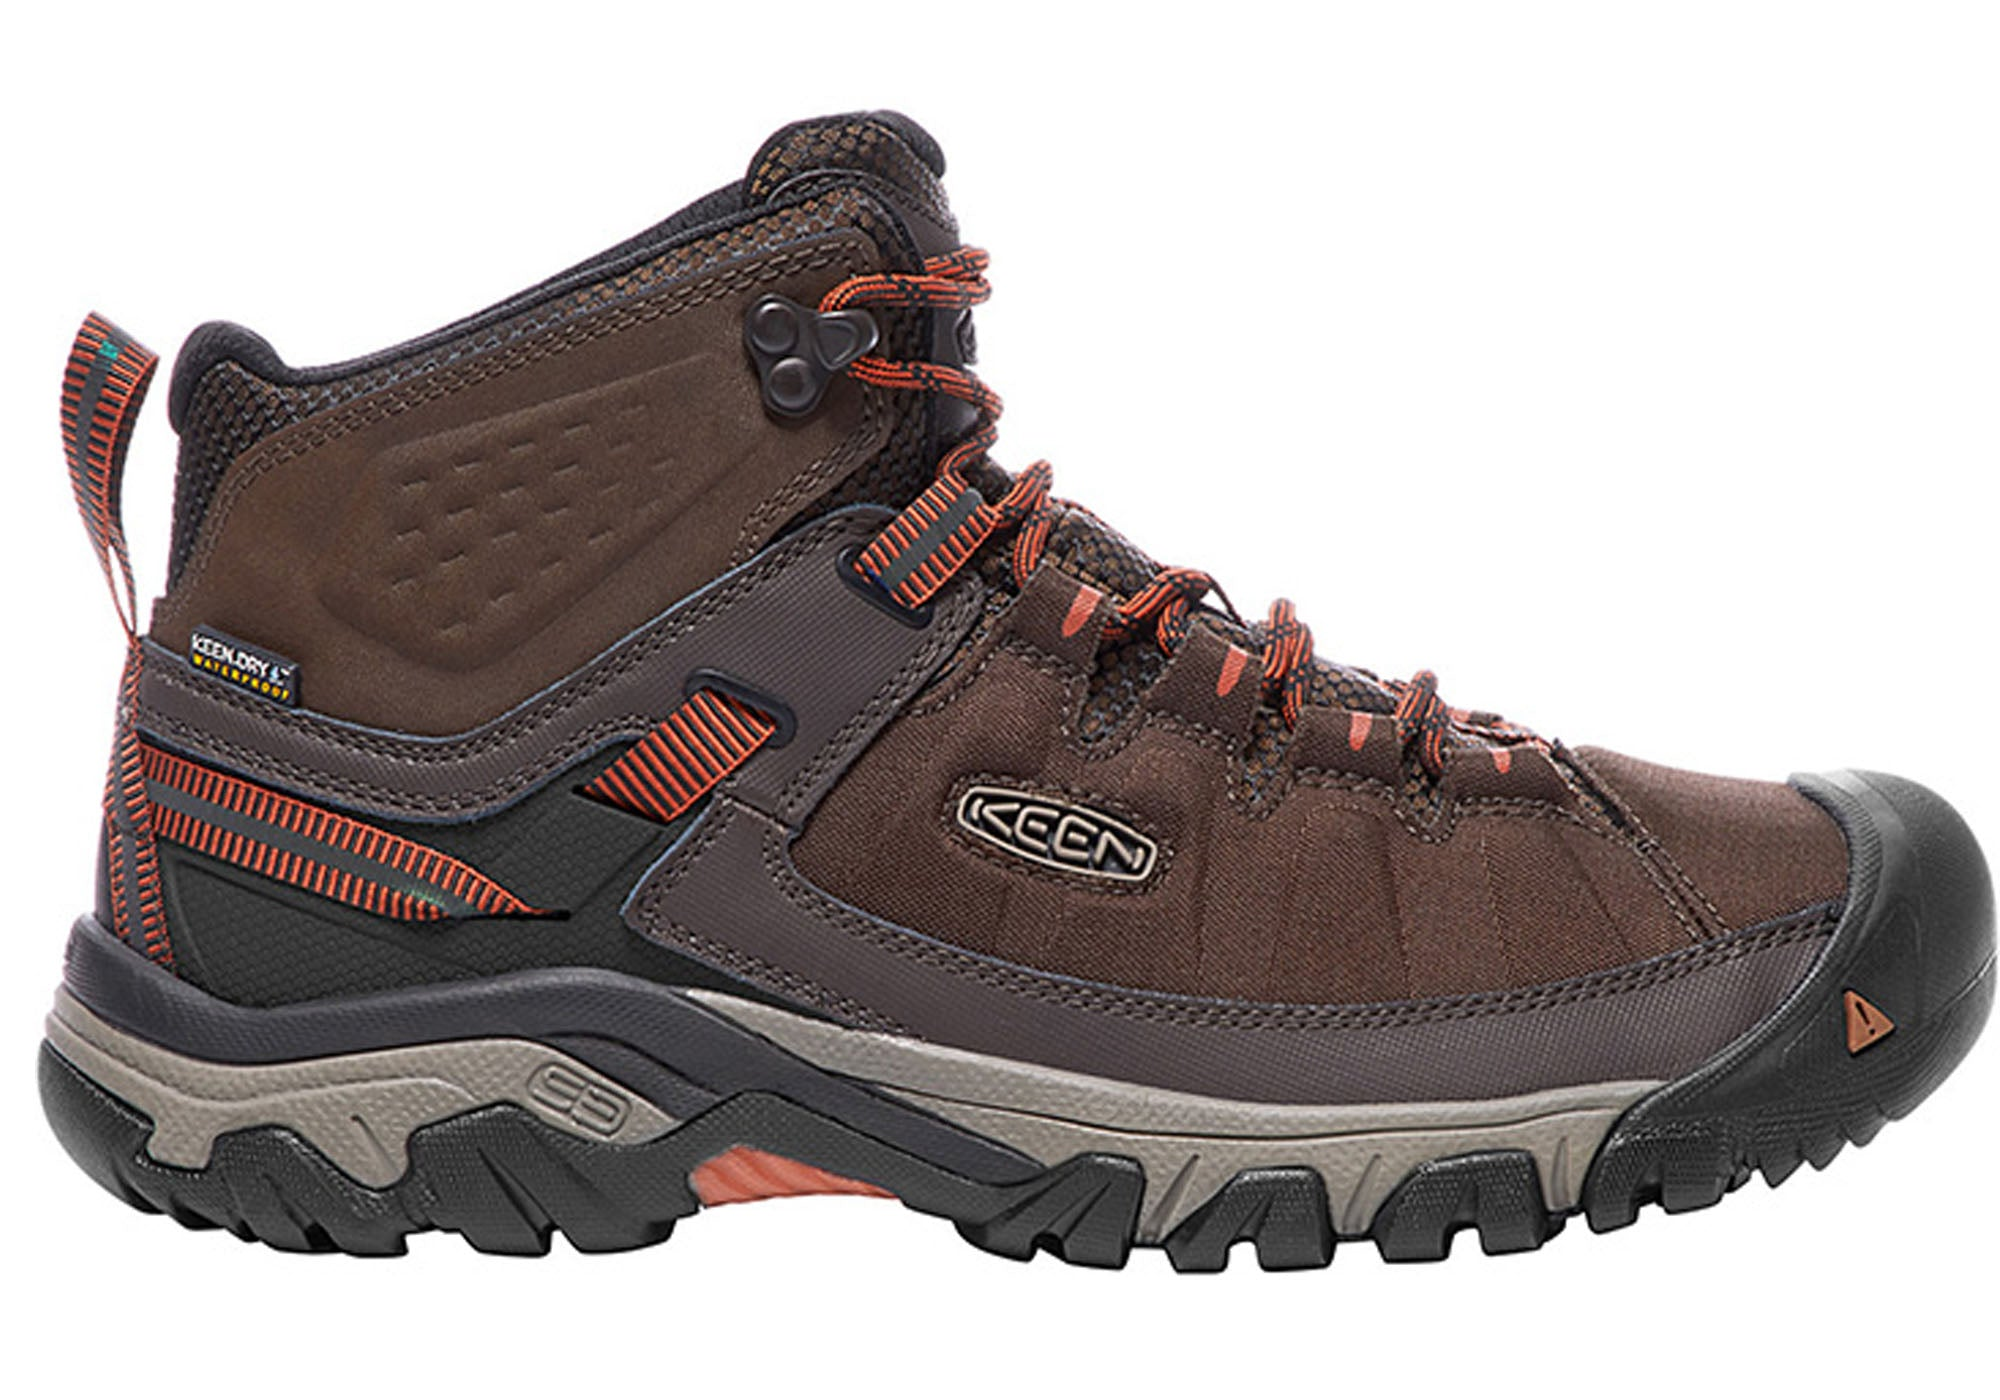 product of for comfortable outright very comforter edge mid review reviews hiking merrell boots boot waterproof women p